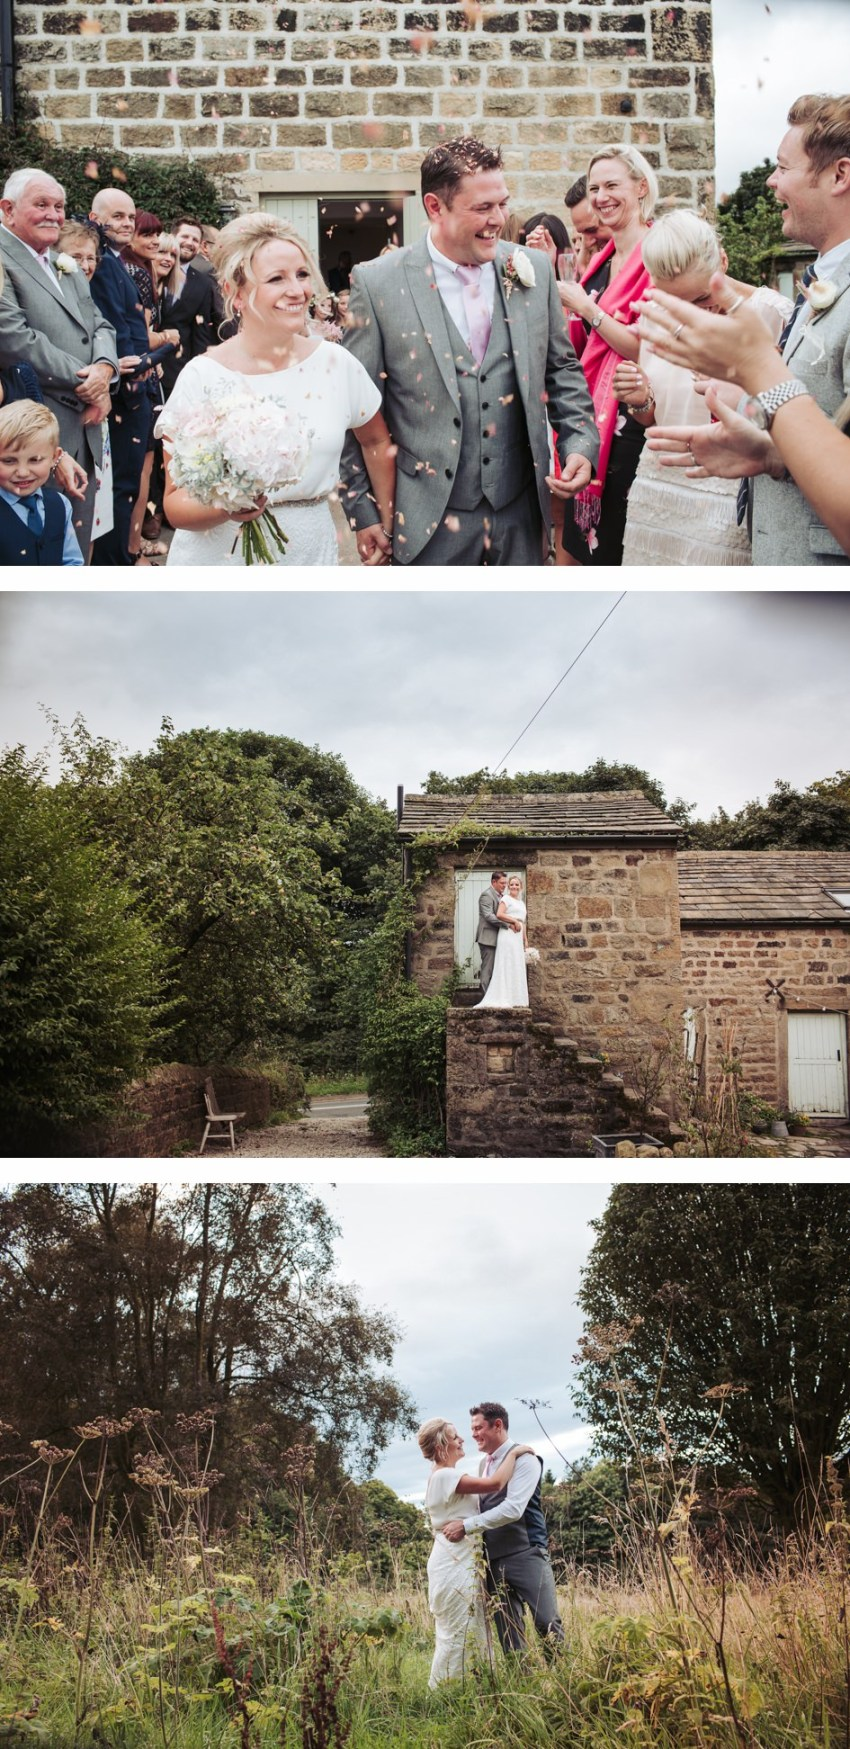 Otley barn wedding | Leeds wedding photographer | West Yorkshire barn wedding |